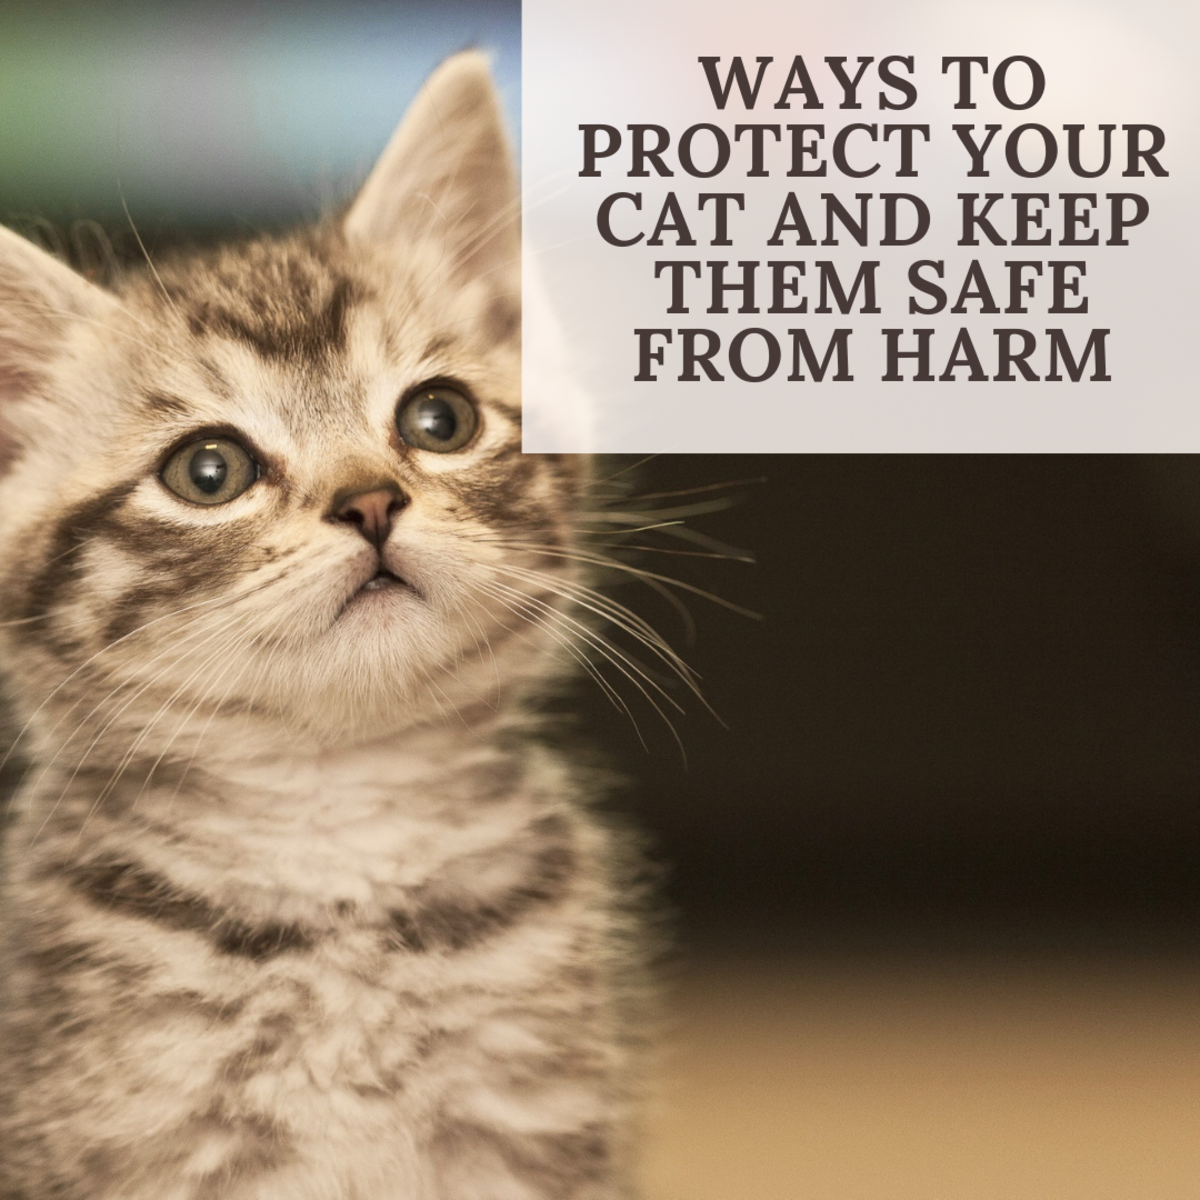 There are many ways to make the world a safer place for your kitty!